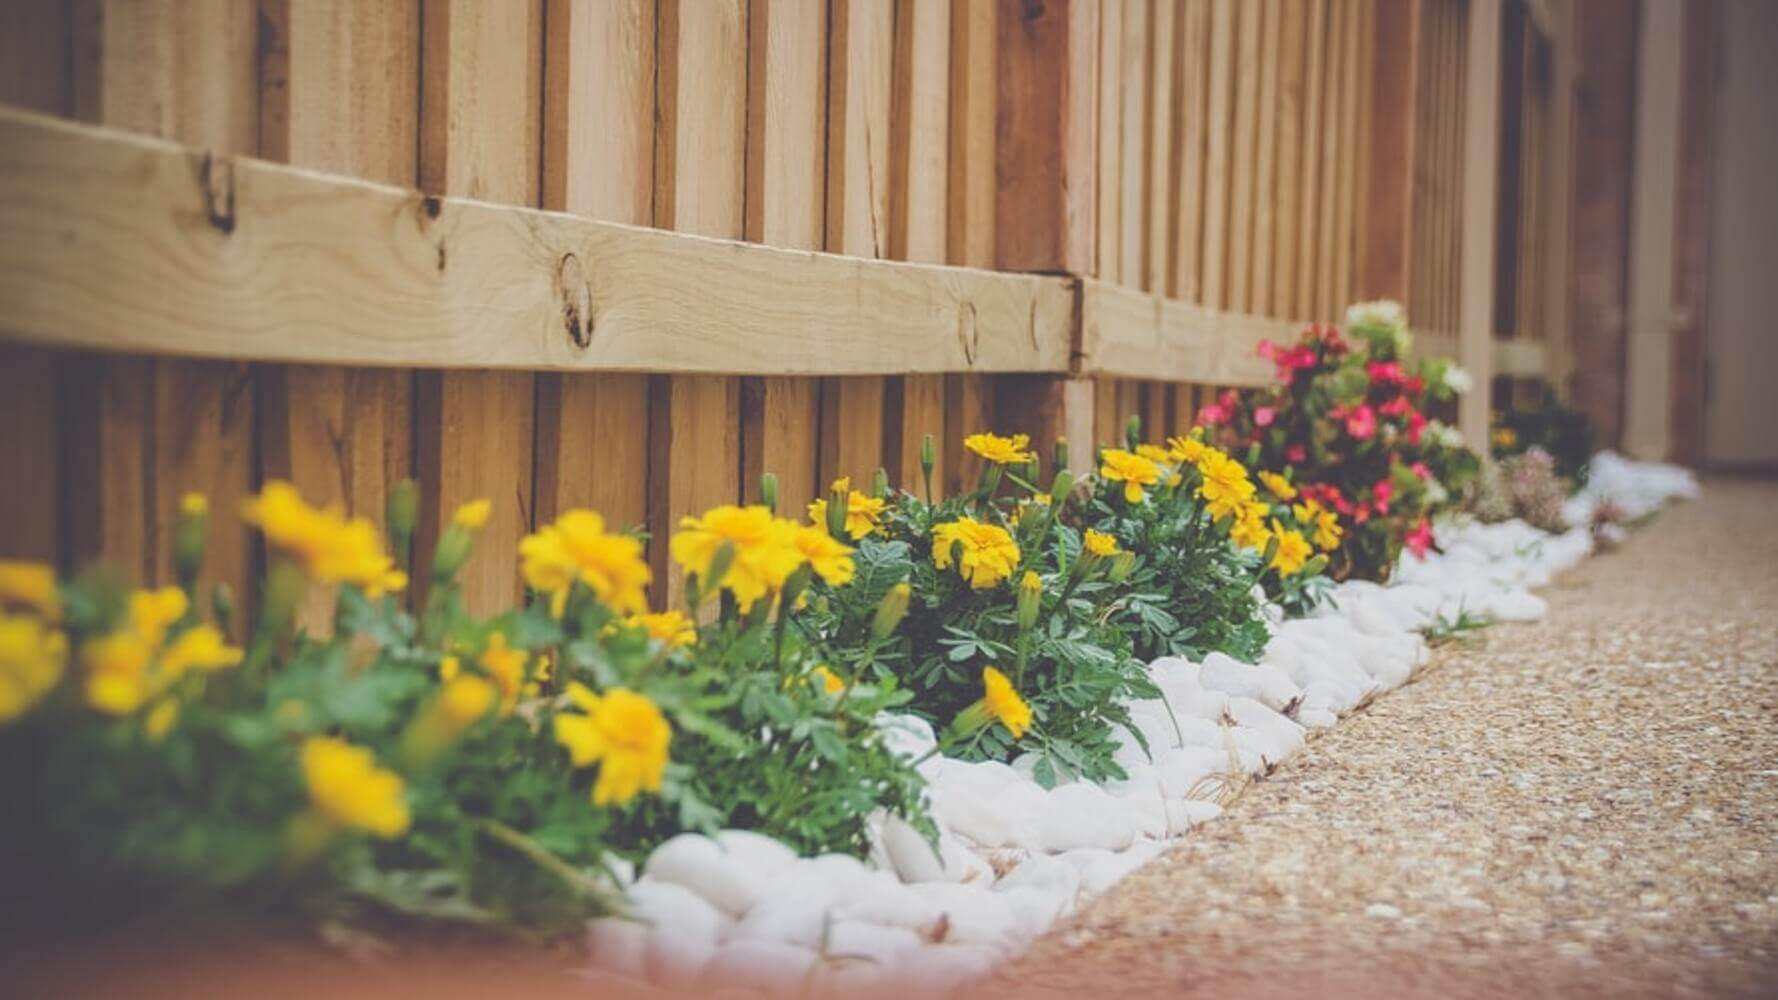 6 Landscaping Tips That Are Sure to Add Value to Your Home